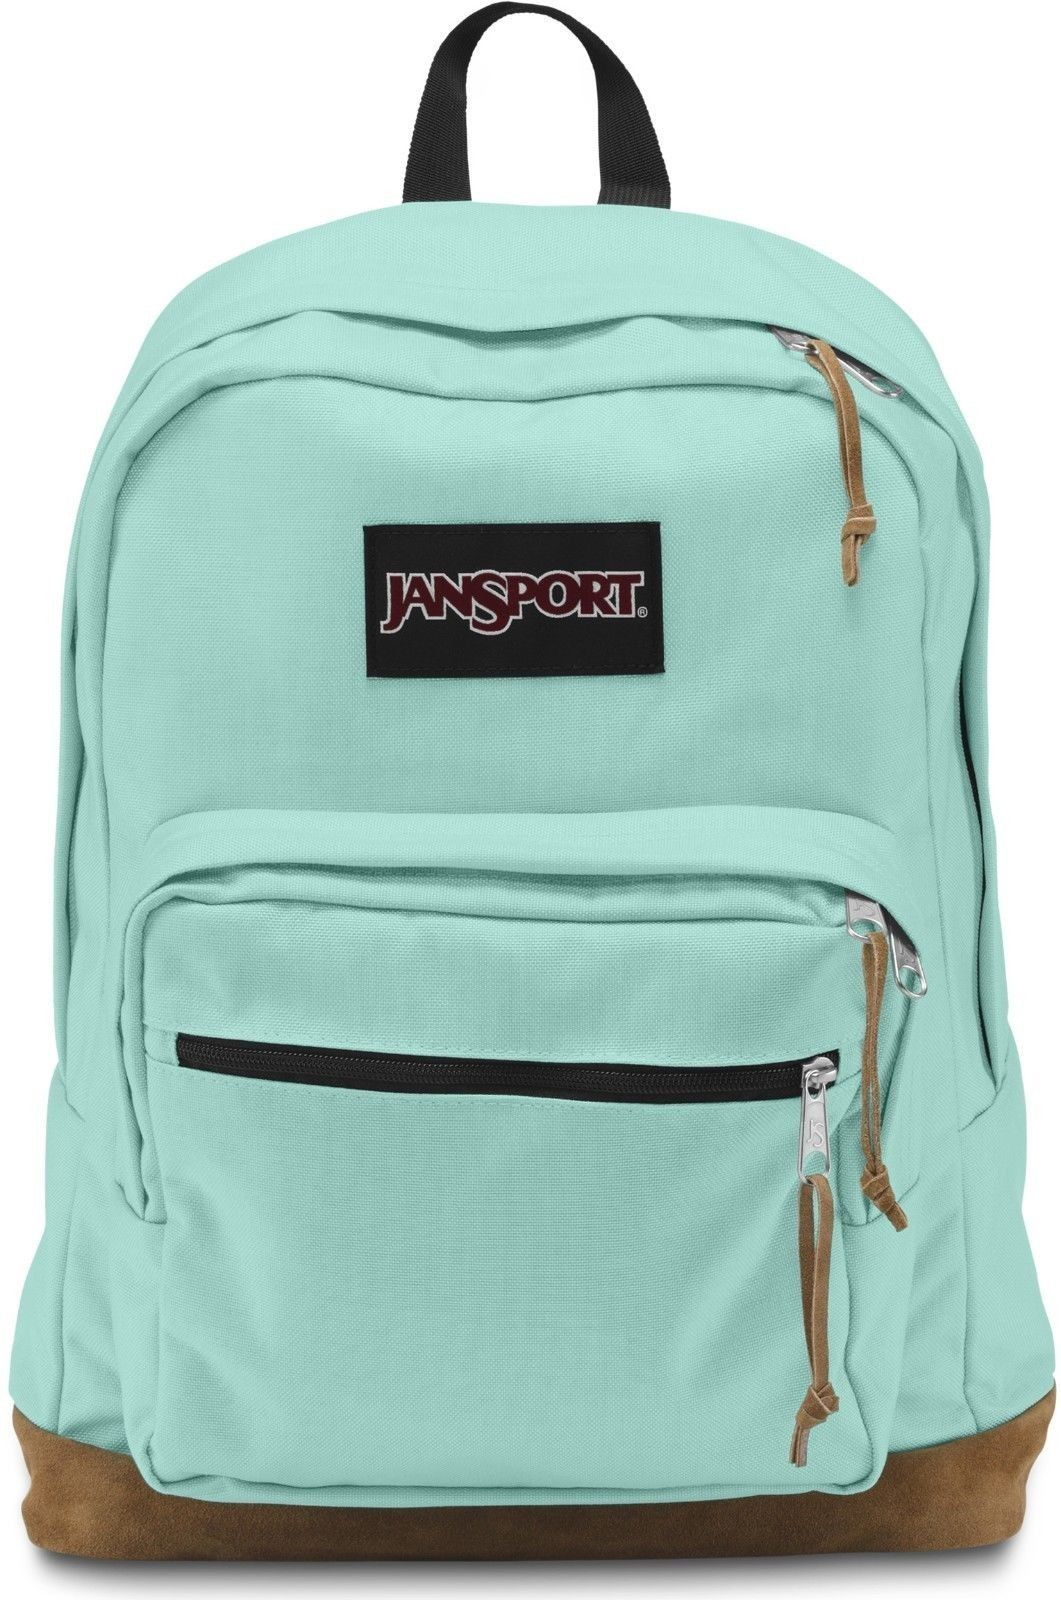 Where Can I Buy A Jansport Backpack gVKC524K